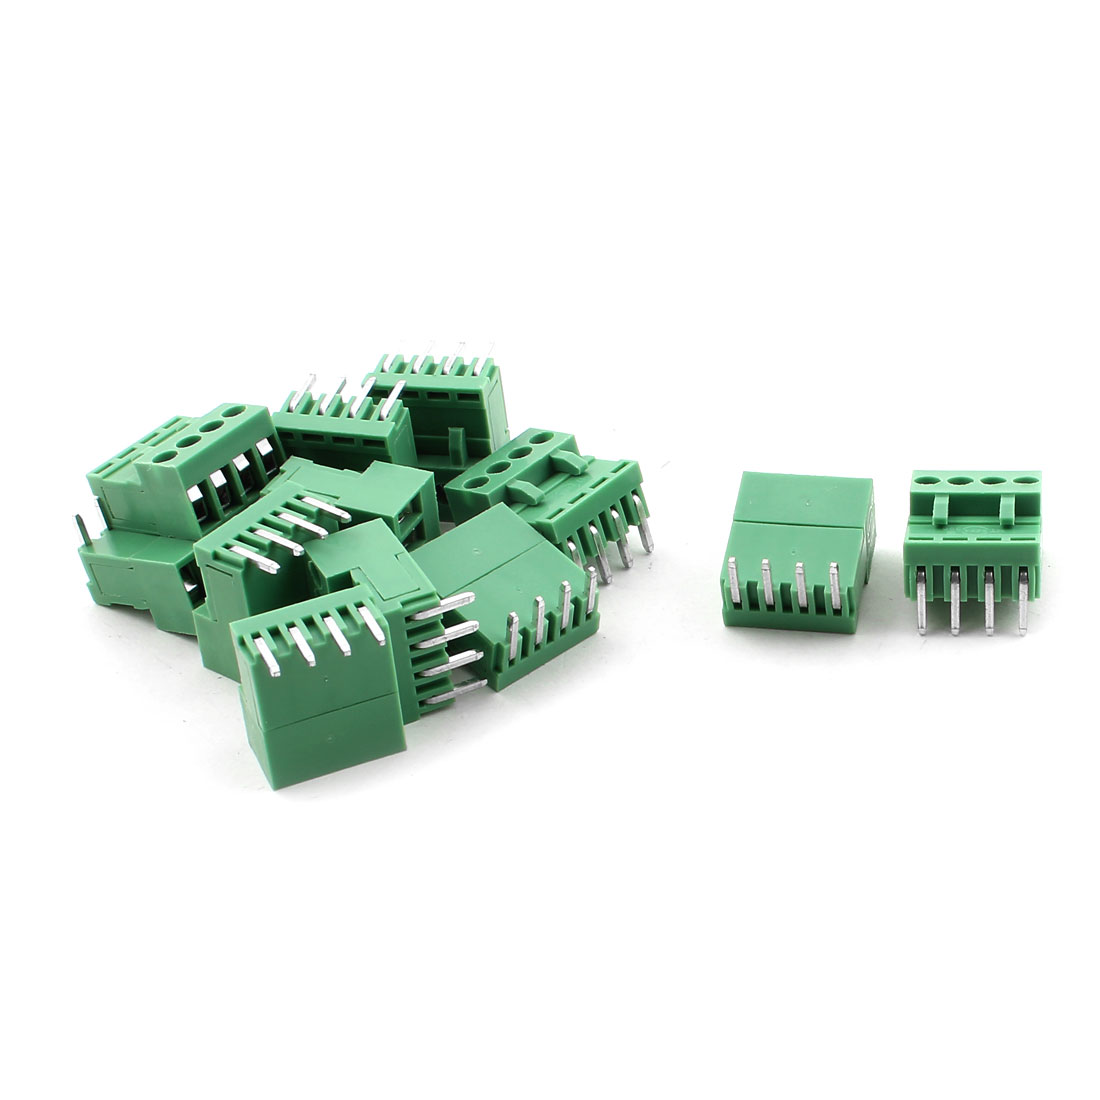 HT396K AC 300V 10A AWG14-26 Panel PCB Mount Screw Terminal Block Green 12pcs